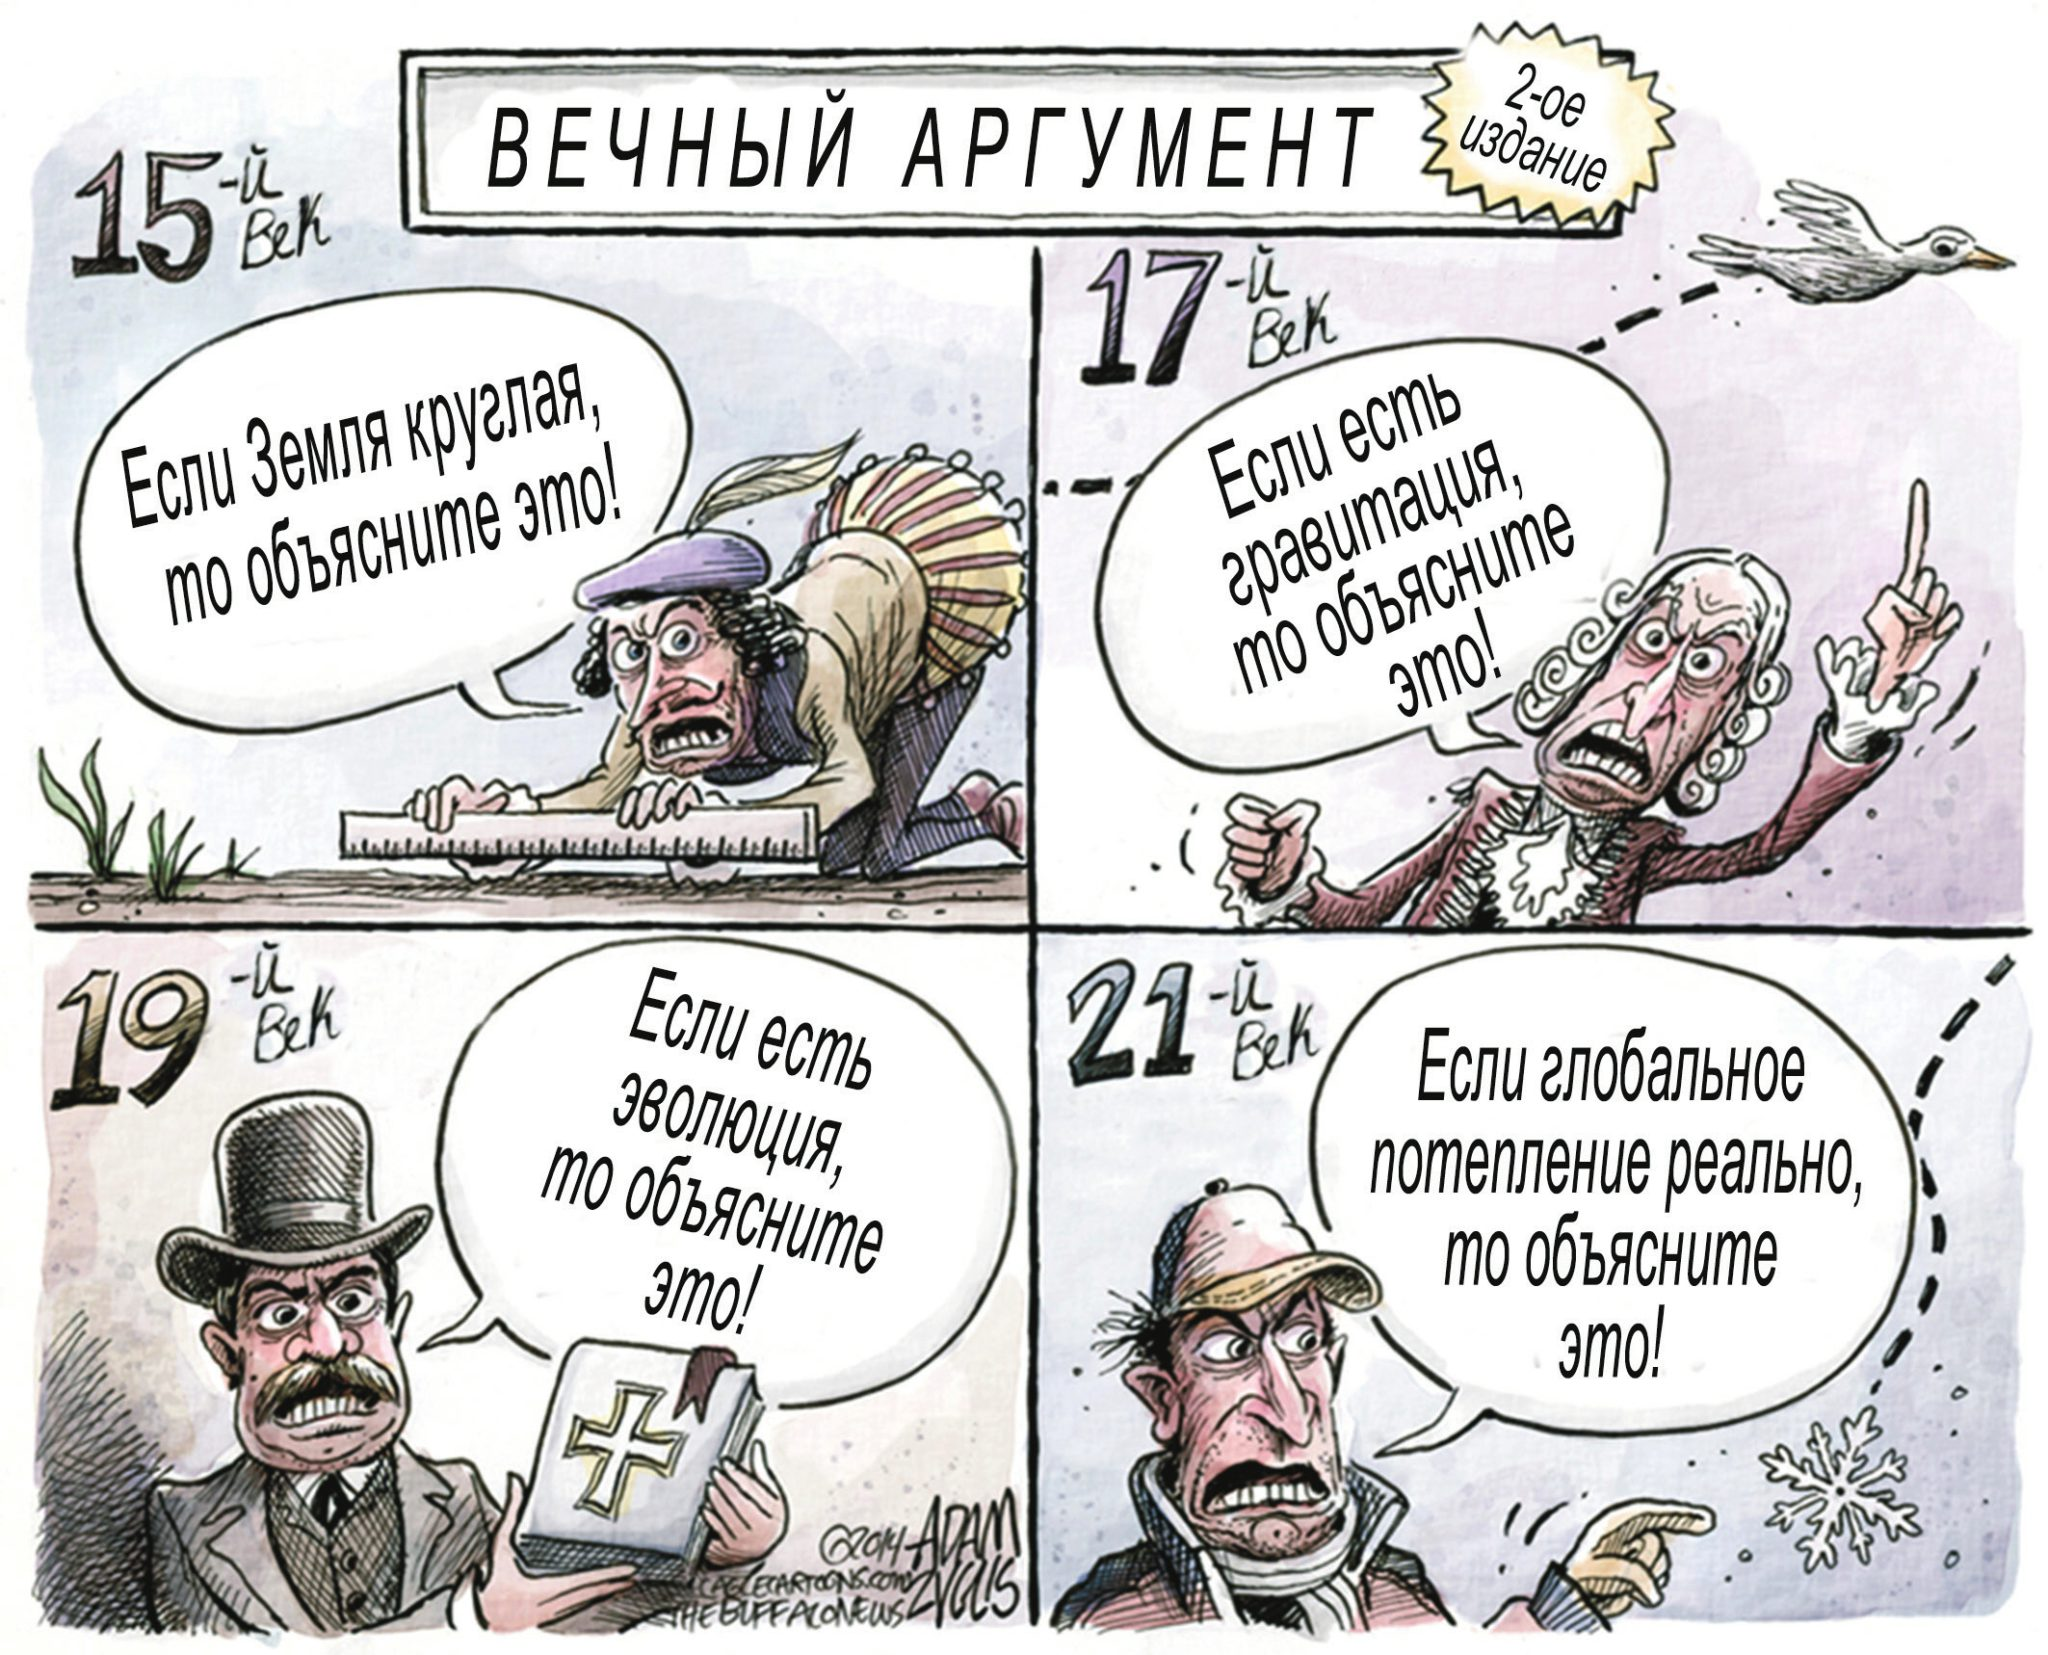 Adam Zyglis. An Age-old argument. 2nd edition (Adam Zyglis/The Buffalo News. April 15, 2014)